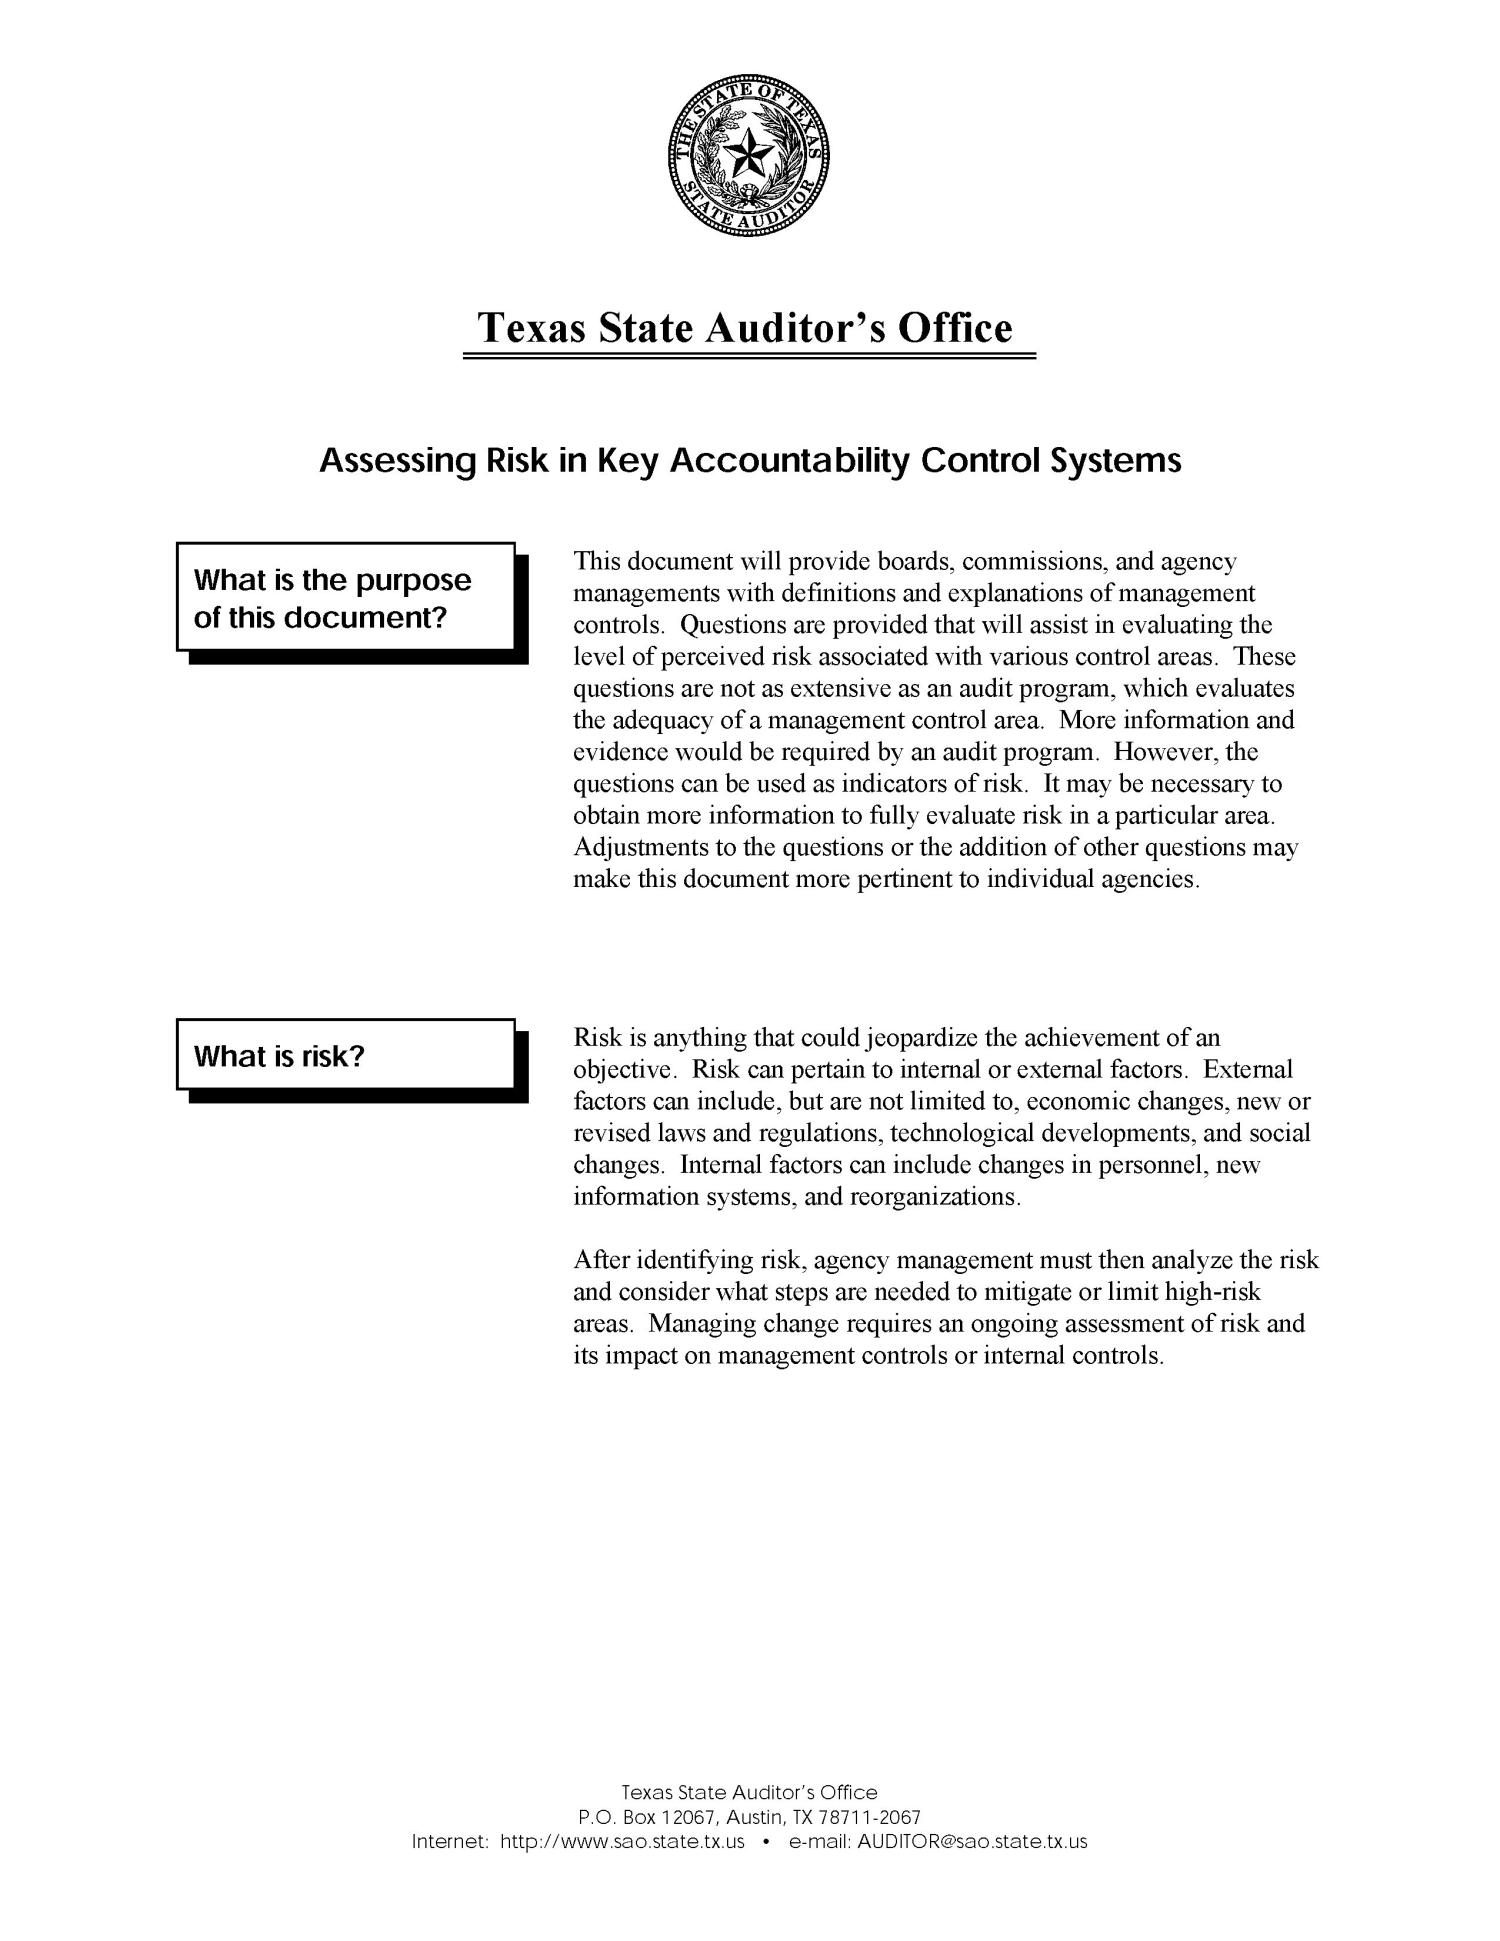 A Guide to Assessing Risk in Key Accountability Control Systems